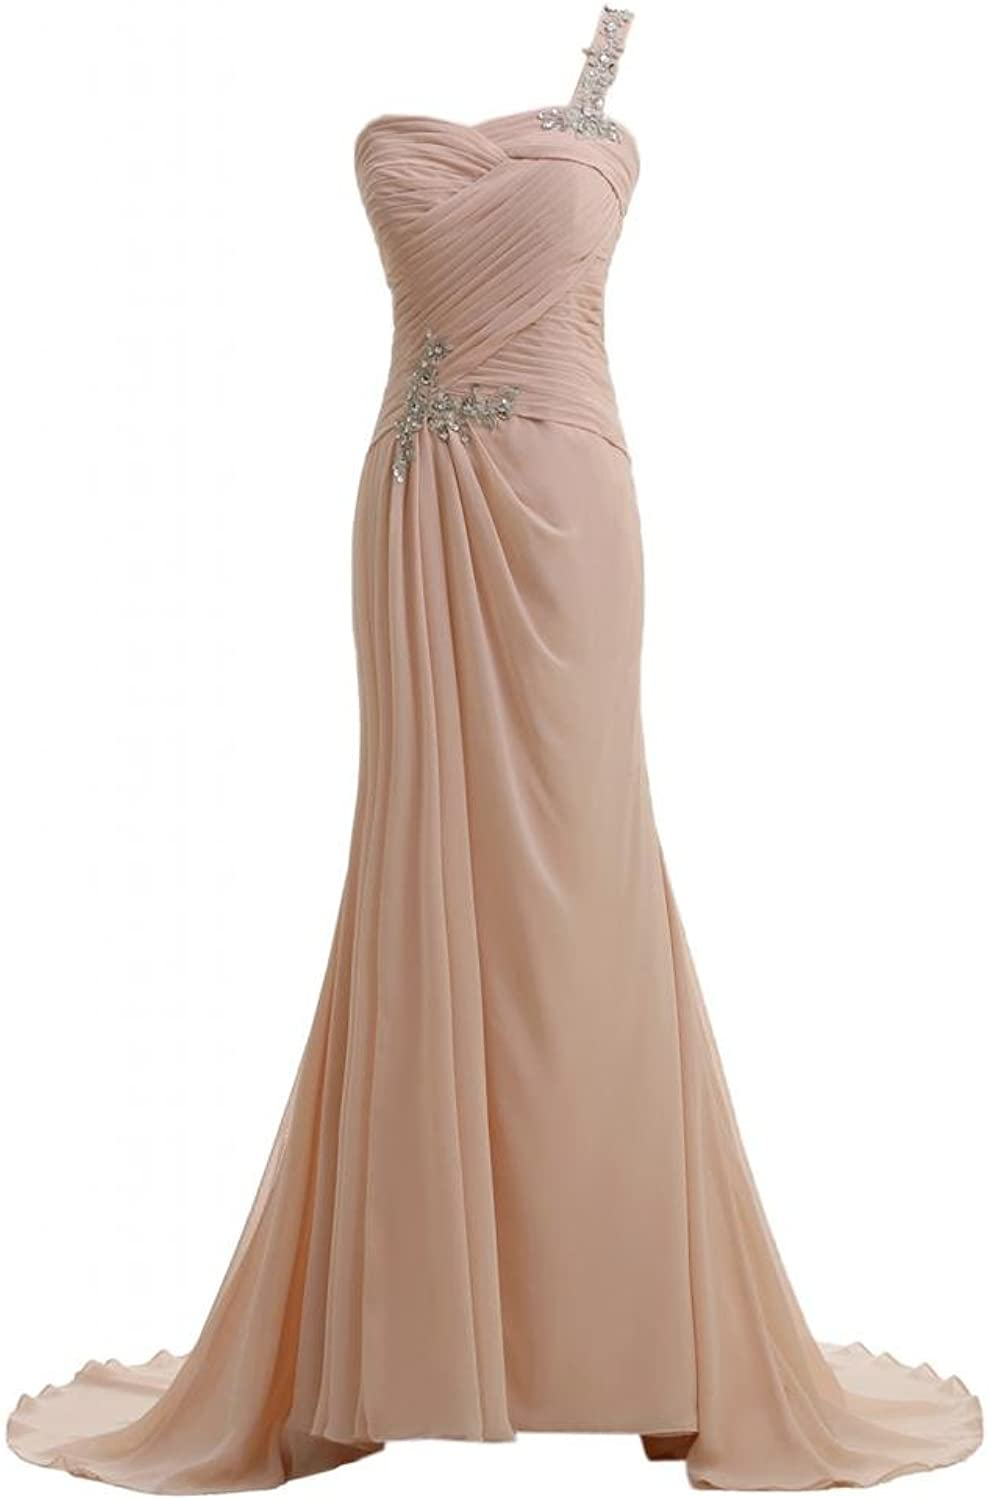 Angel Bride Sheath Train OneShoulder Celebrity Evening Dresses